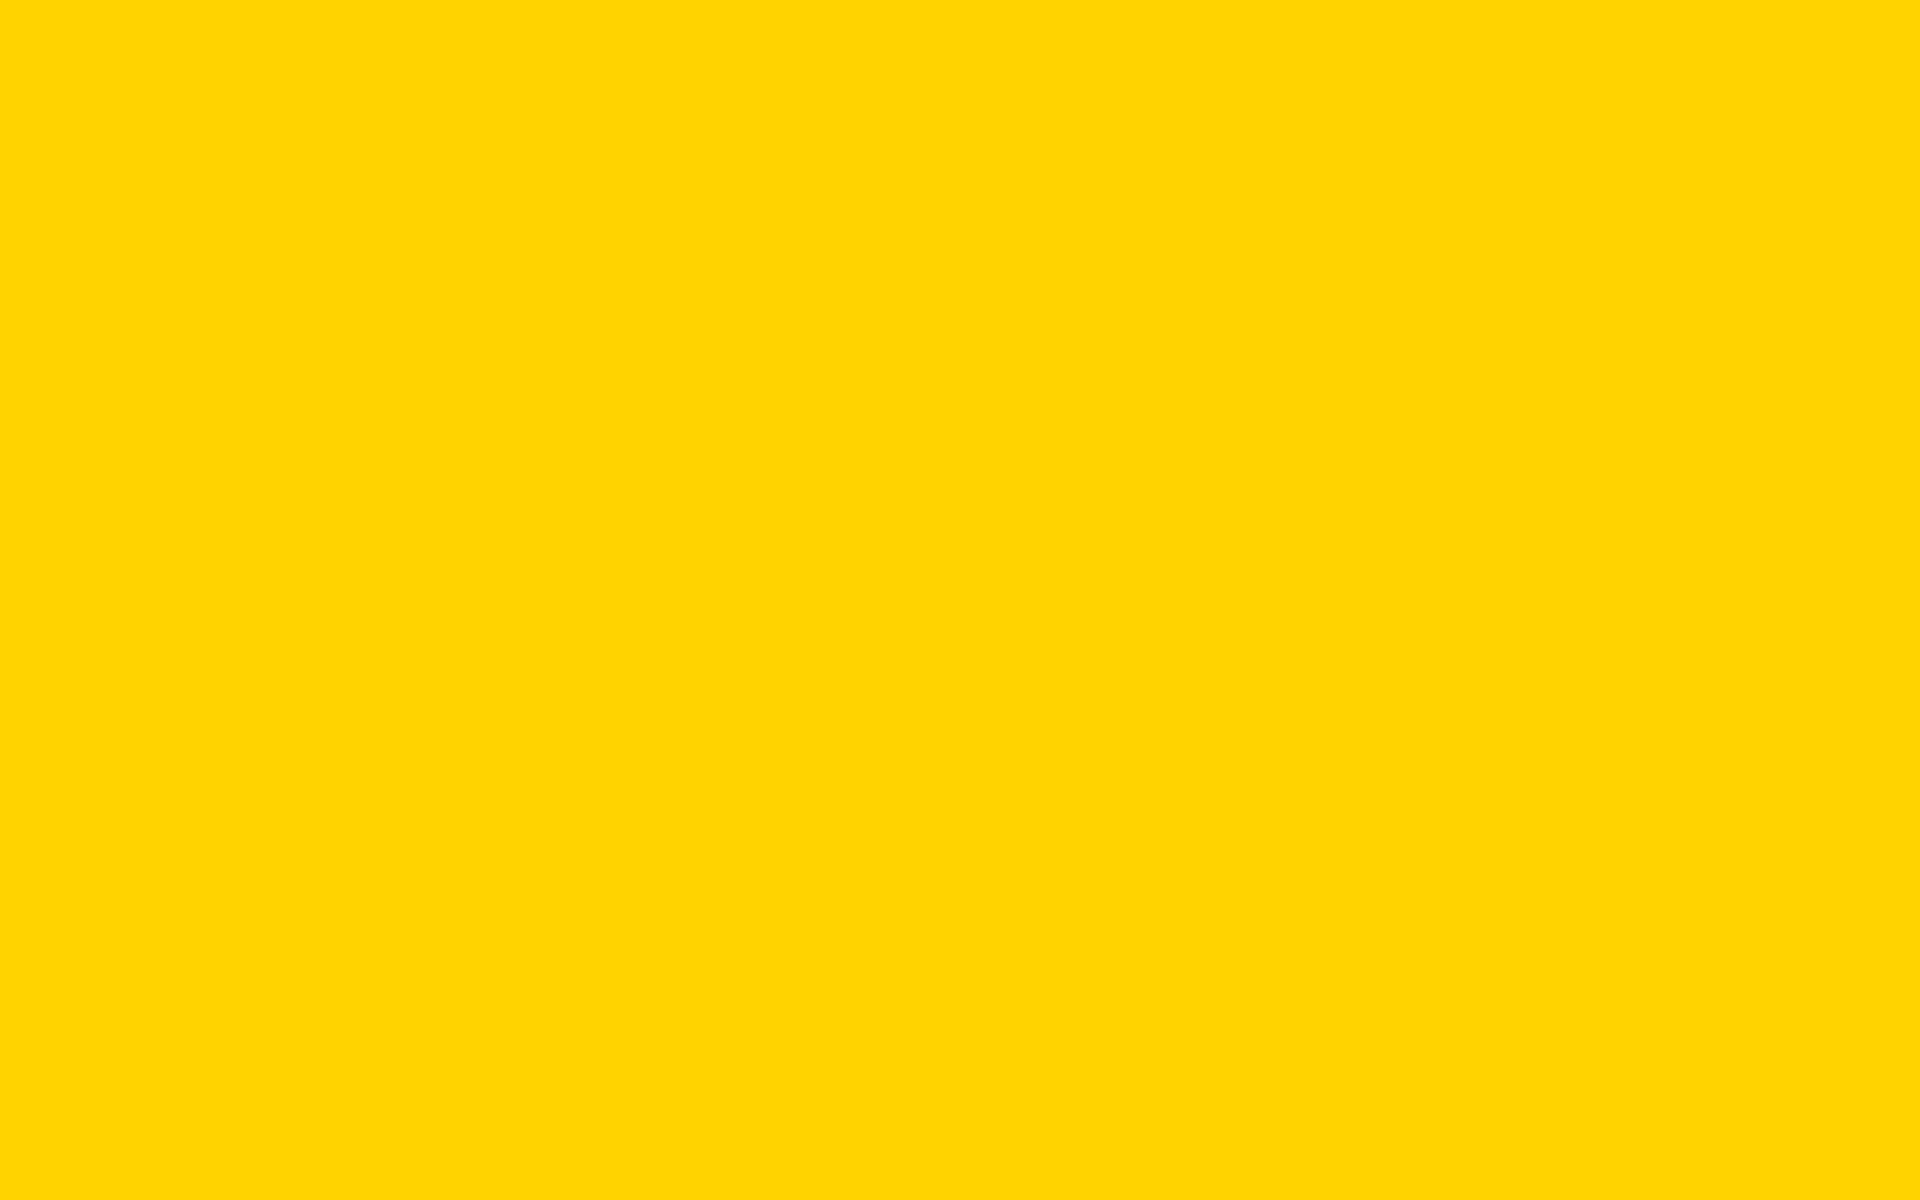 1920x1200 Cyber Yellow Solid Color Background